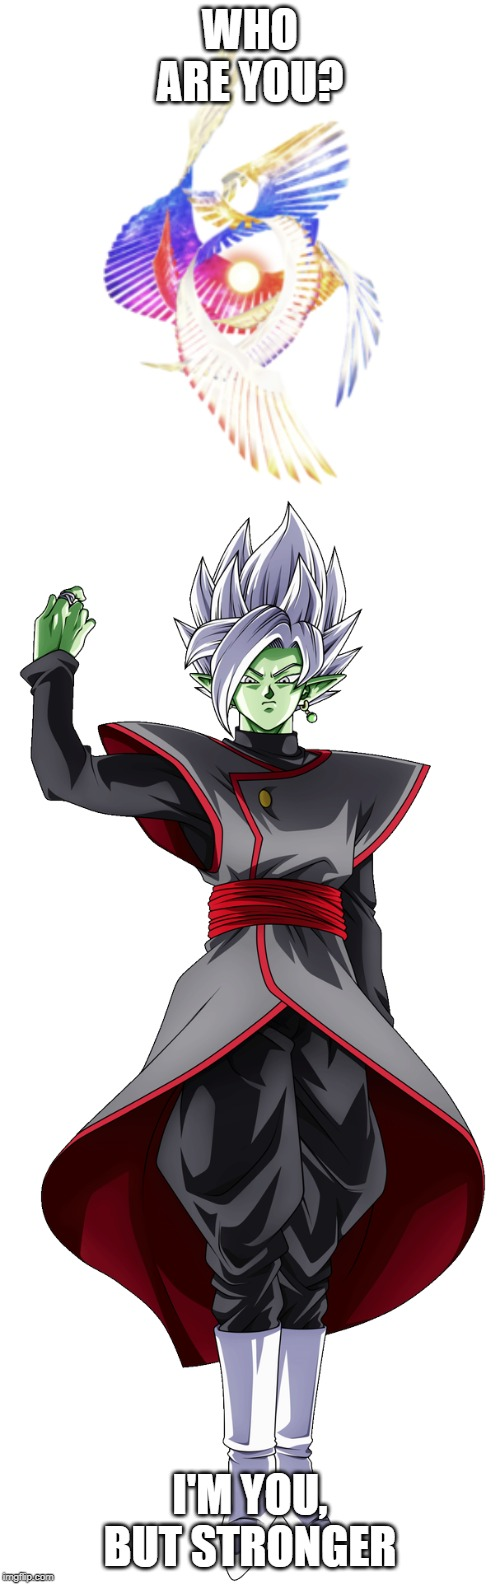 Fused Zamasu > Galeem | WHO ARE YOU? I'M YOU, BUT STRONGER | image tagged in i'm you but stronger,zamasu,dragon ball super,galeem,super smash bros,memes | made w/ Imgflip meme maker